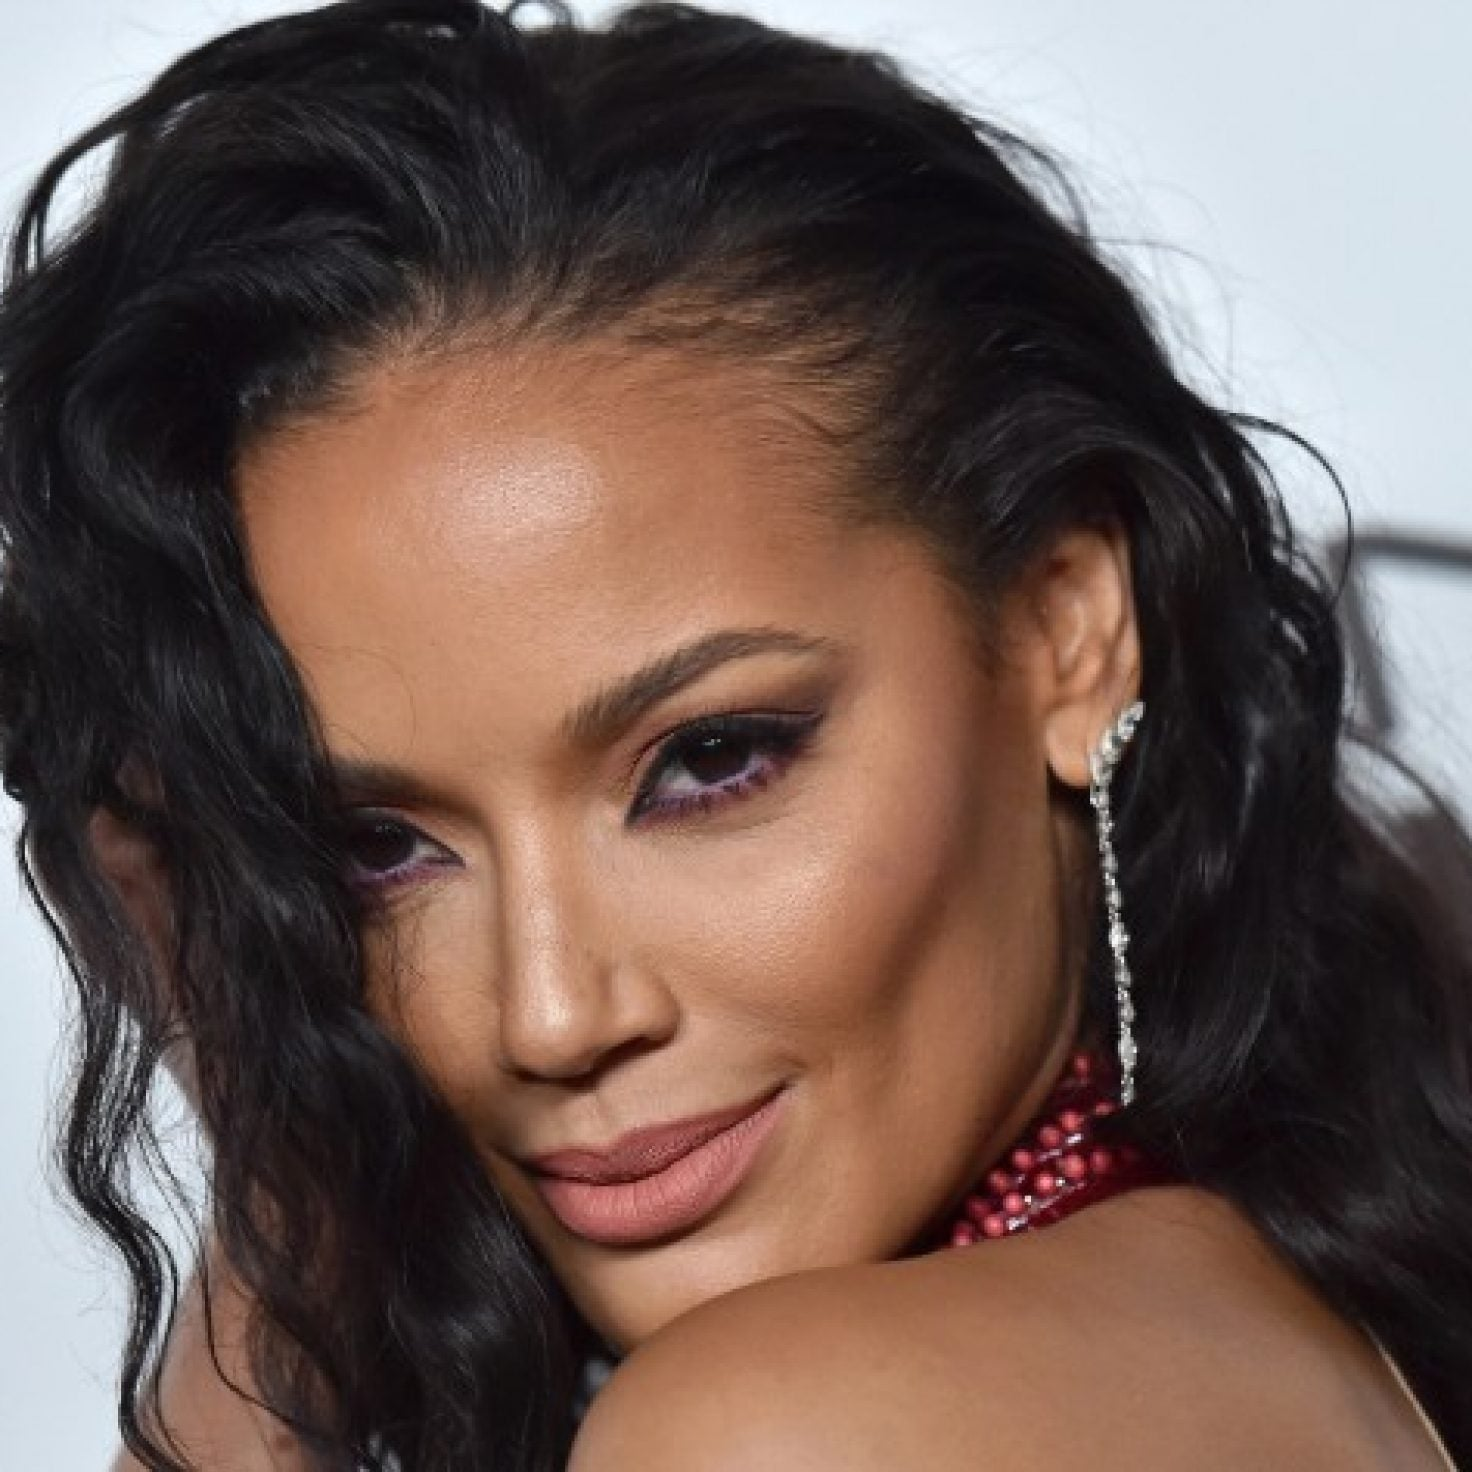 Selita Ebanks Discusses The Dark Side Of Beauty And What She's Doing To Change It